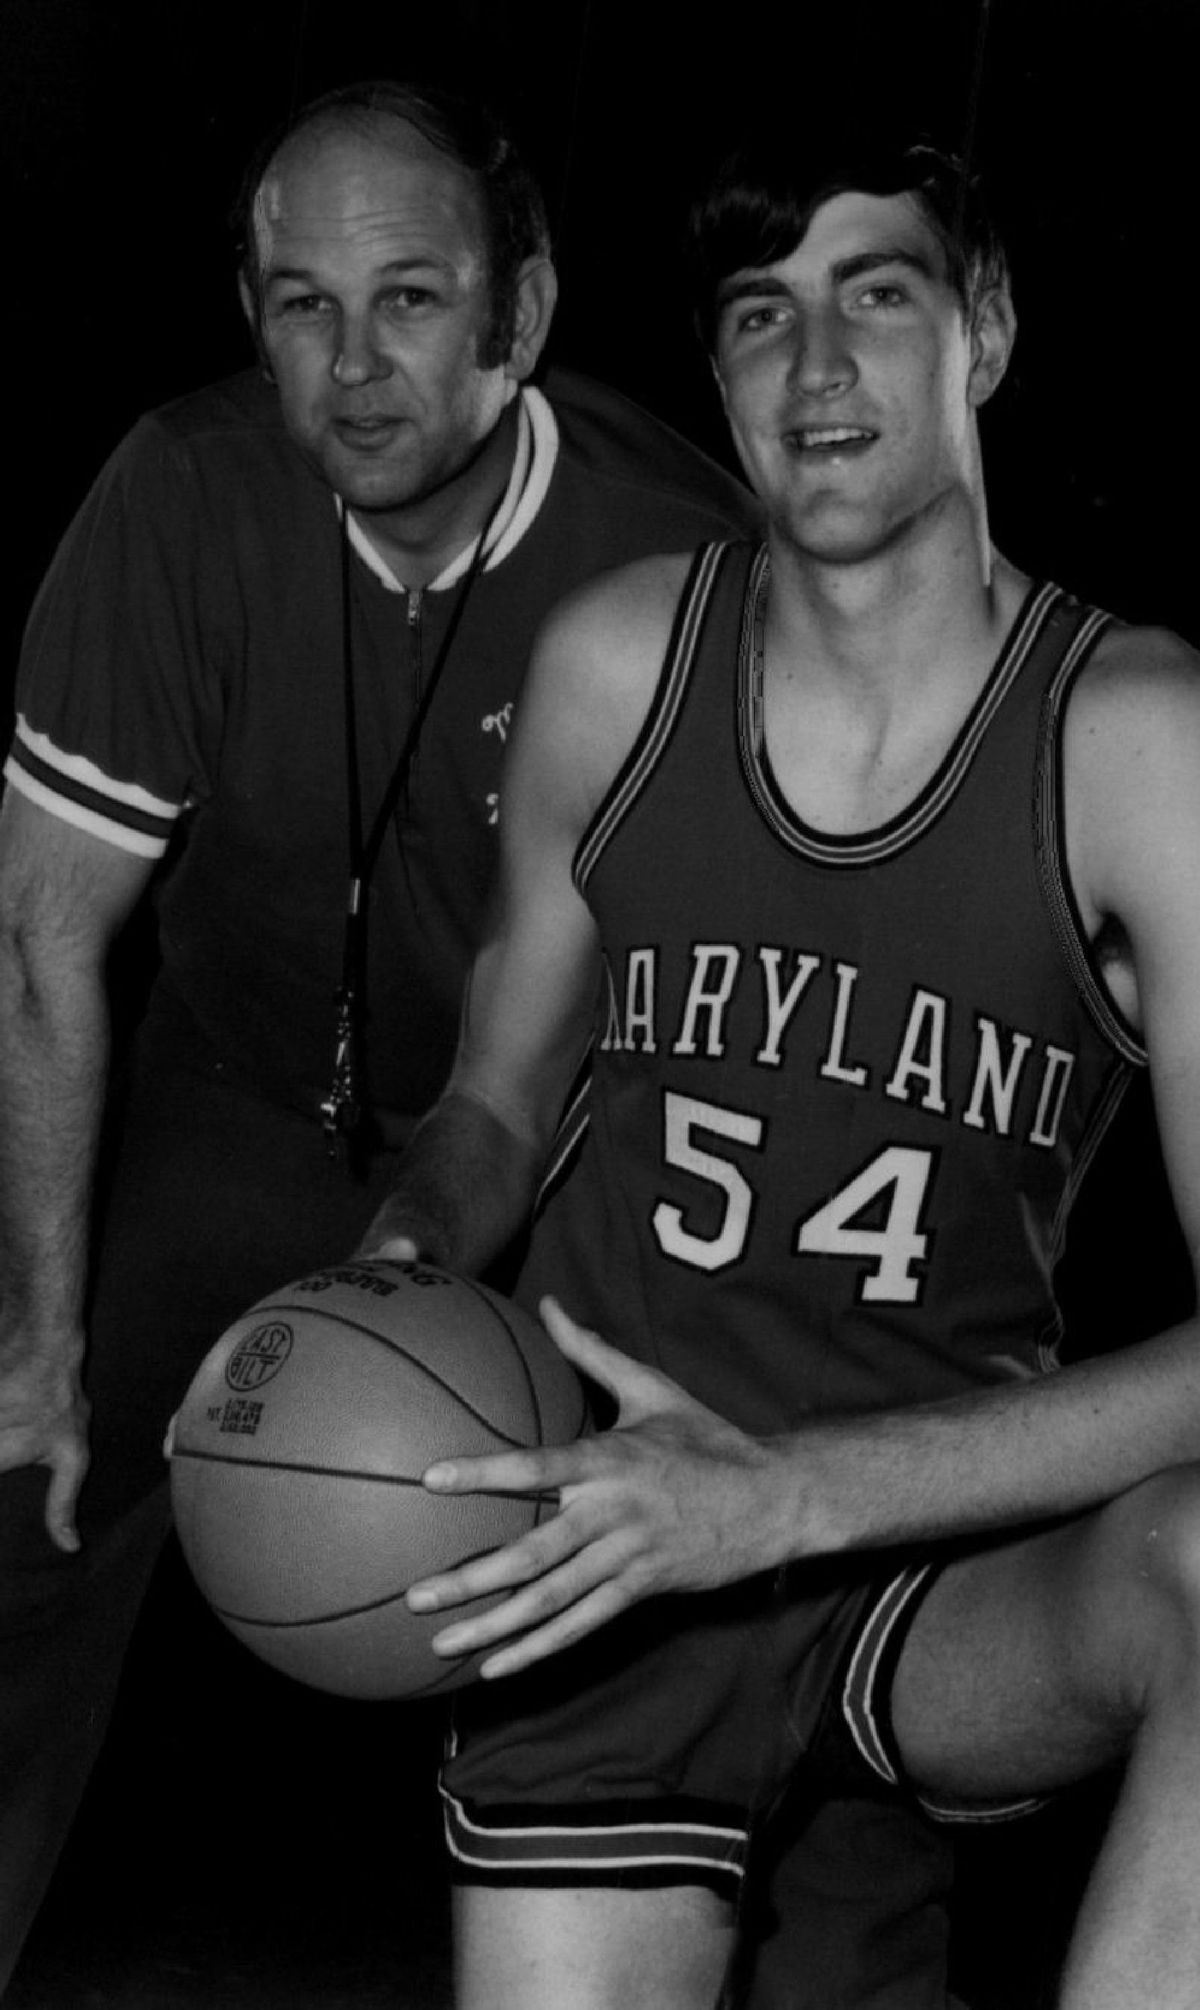 a black-and-white photograph of an older man wearing a coach's whistle and a younger man, holding a basketball, in a basketball uniform.